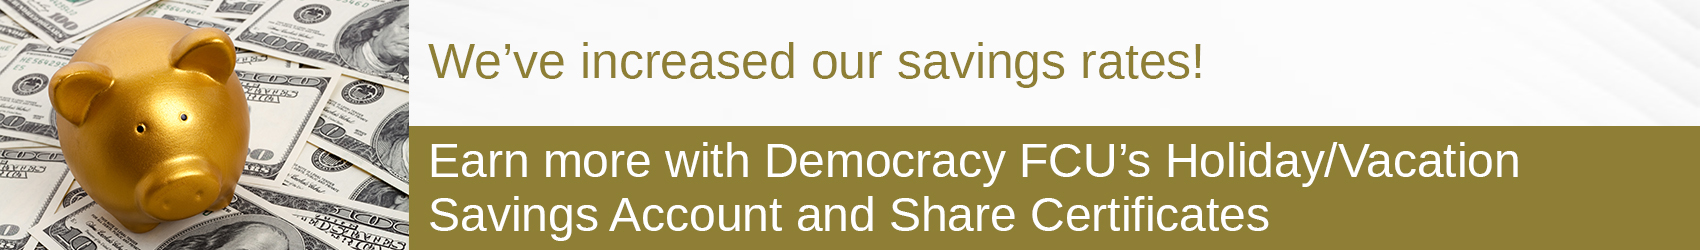 Special Offers From Democracy FCU